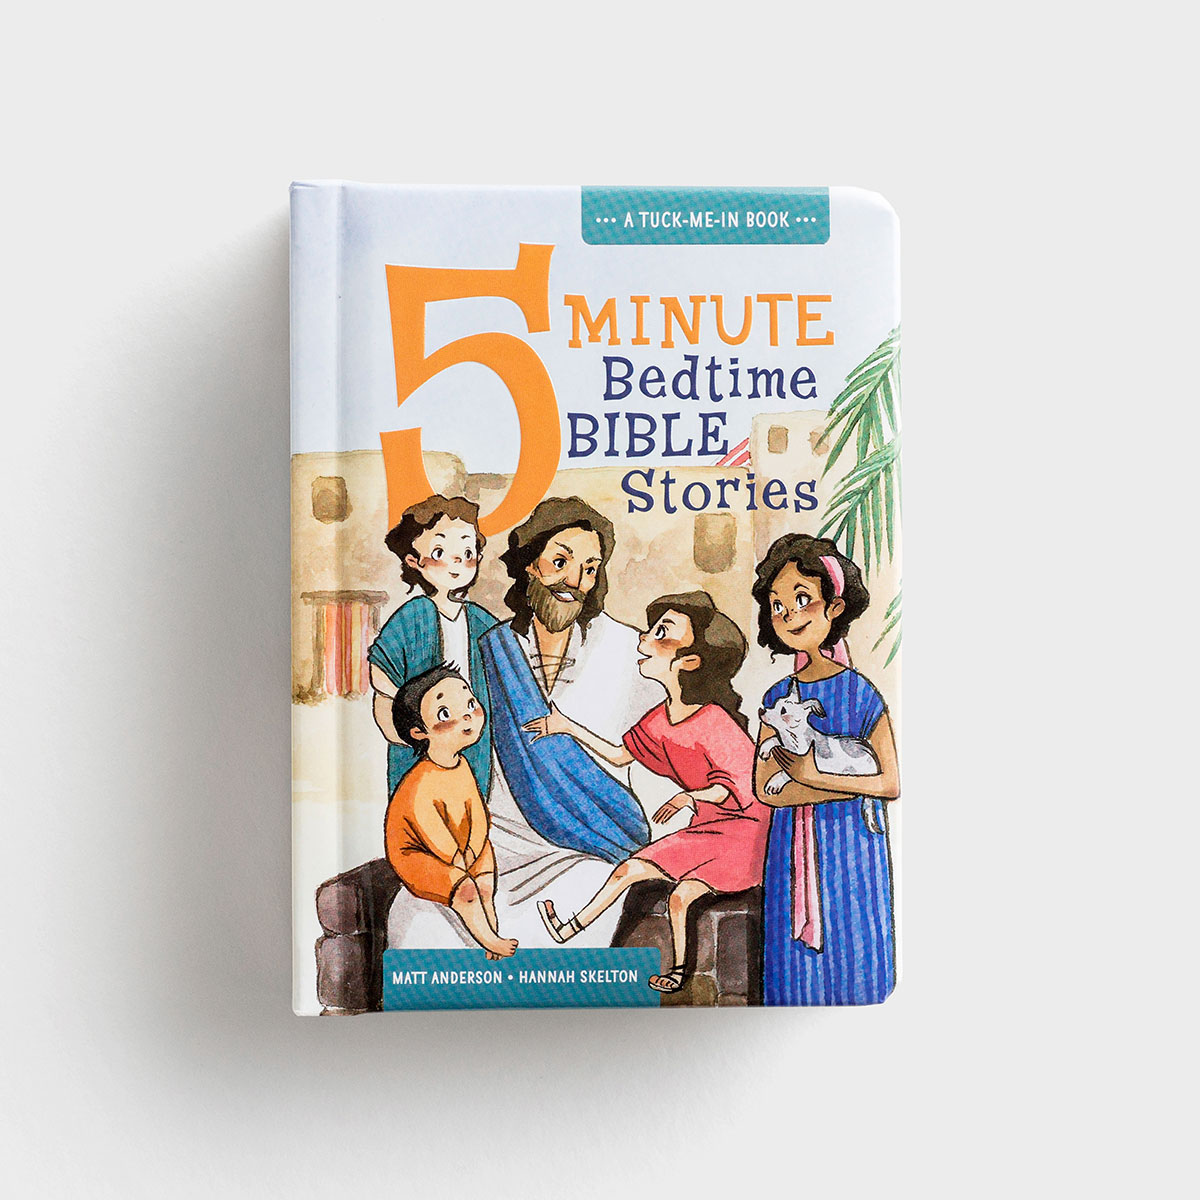 5 Minute Bedtime Bible Stories - A Tuck-Me-In Book